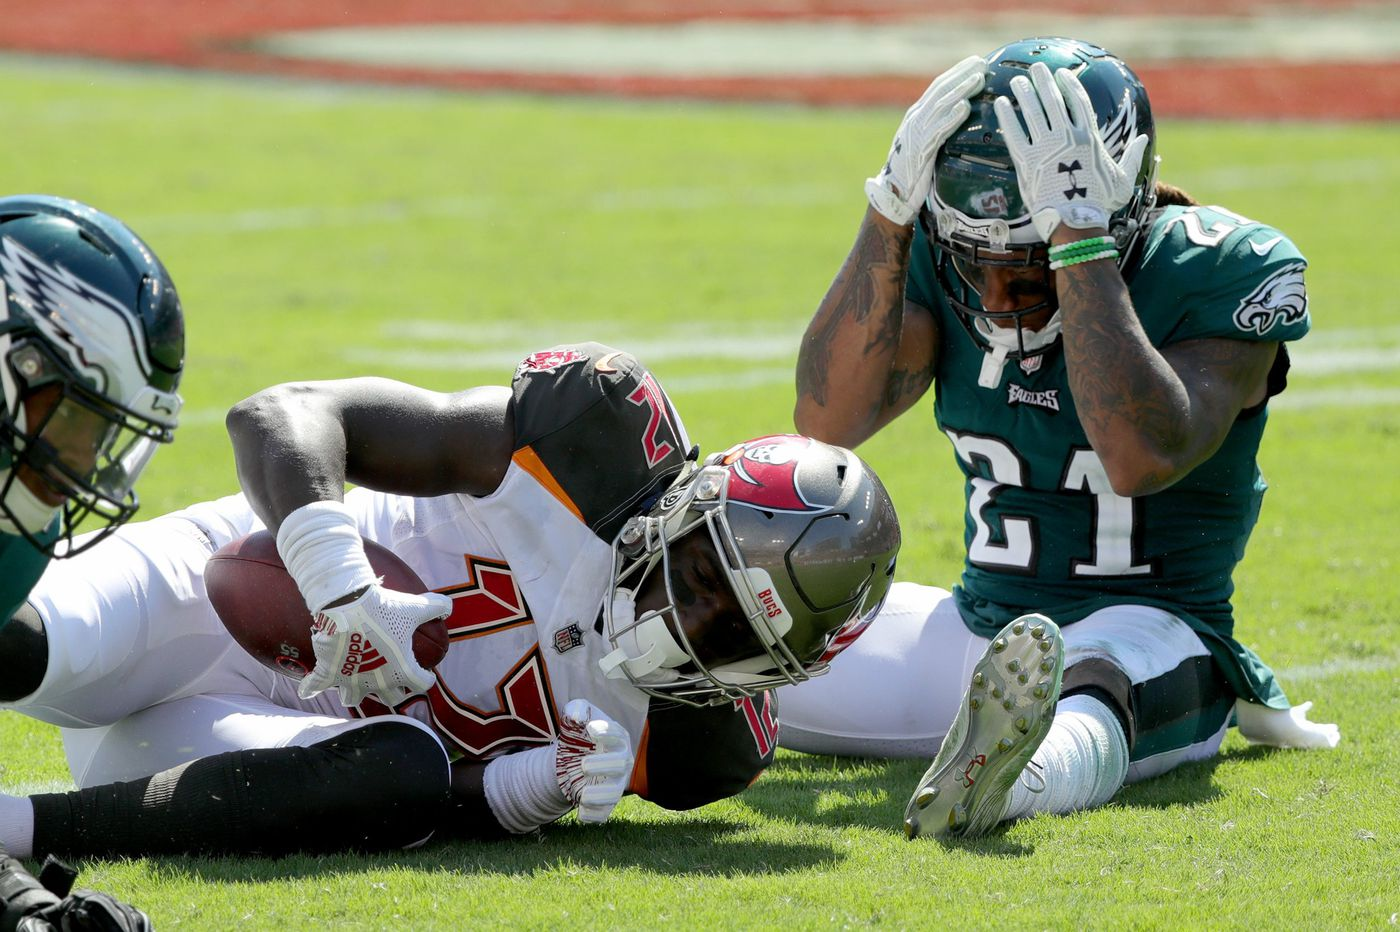 e46c53da7e615 What they're saying about the Eagles' loss to the Bucs | Social media  roundup